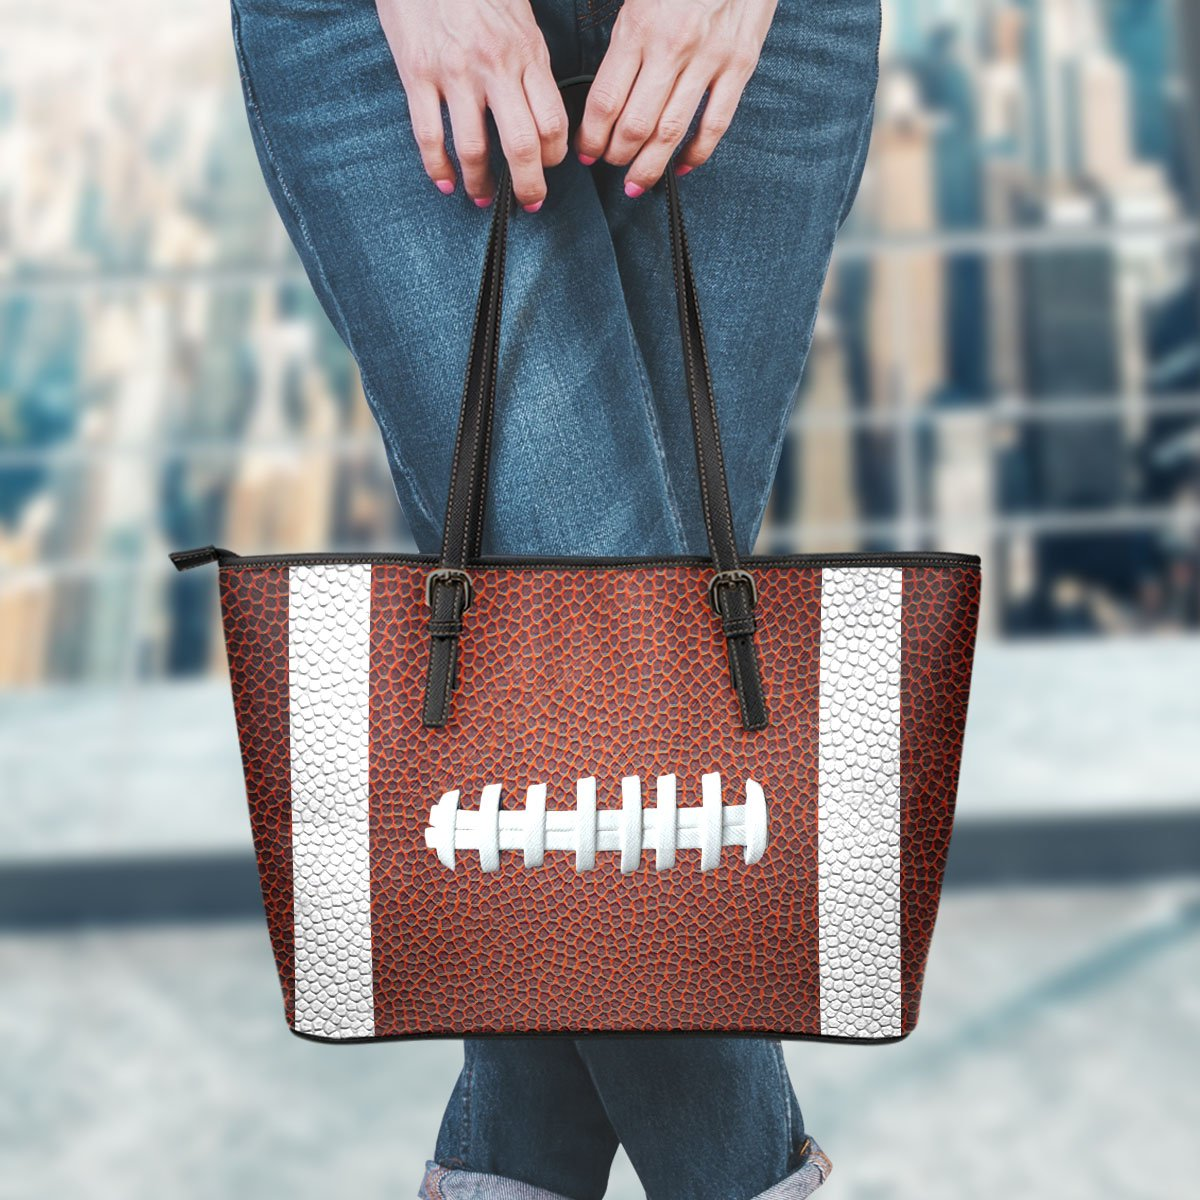 Football (Original) Leather Handbag